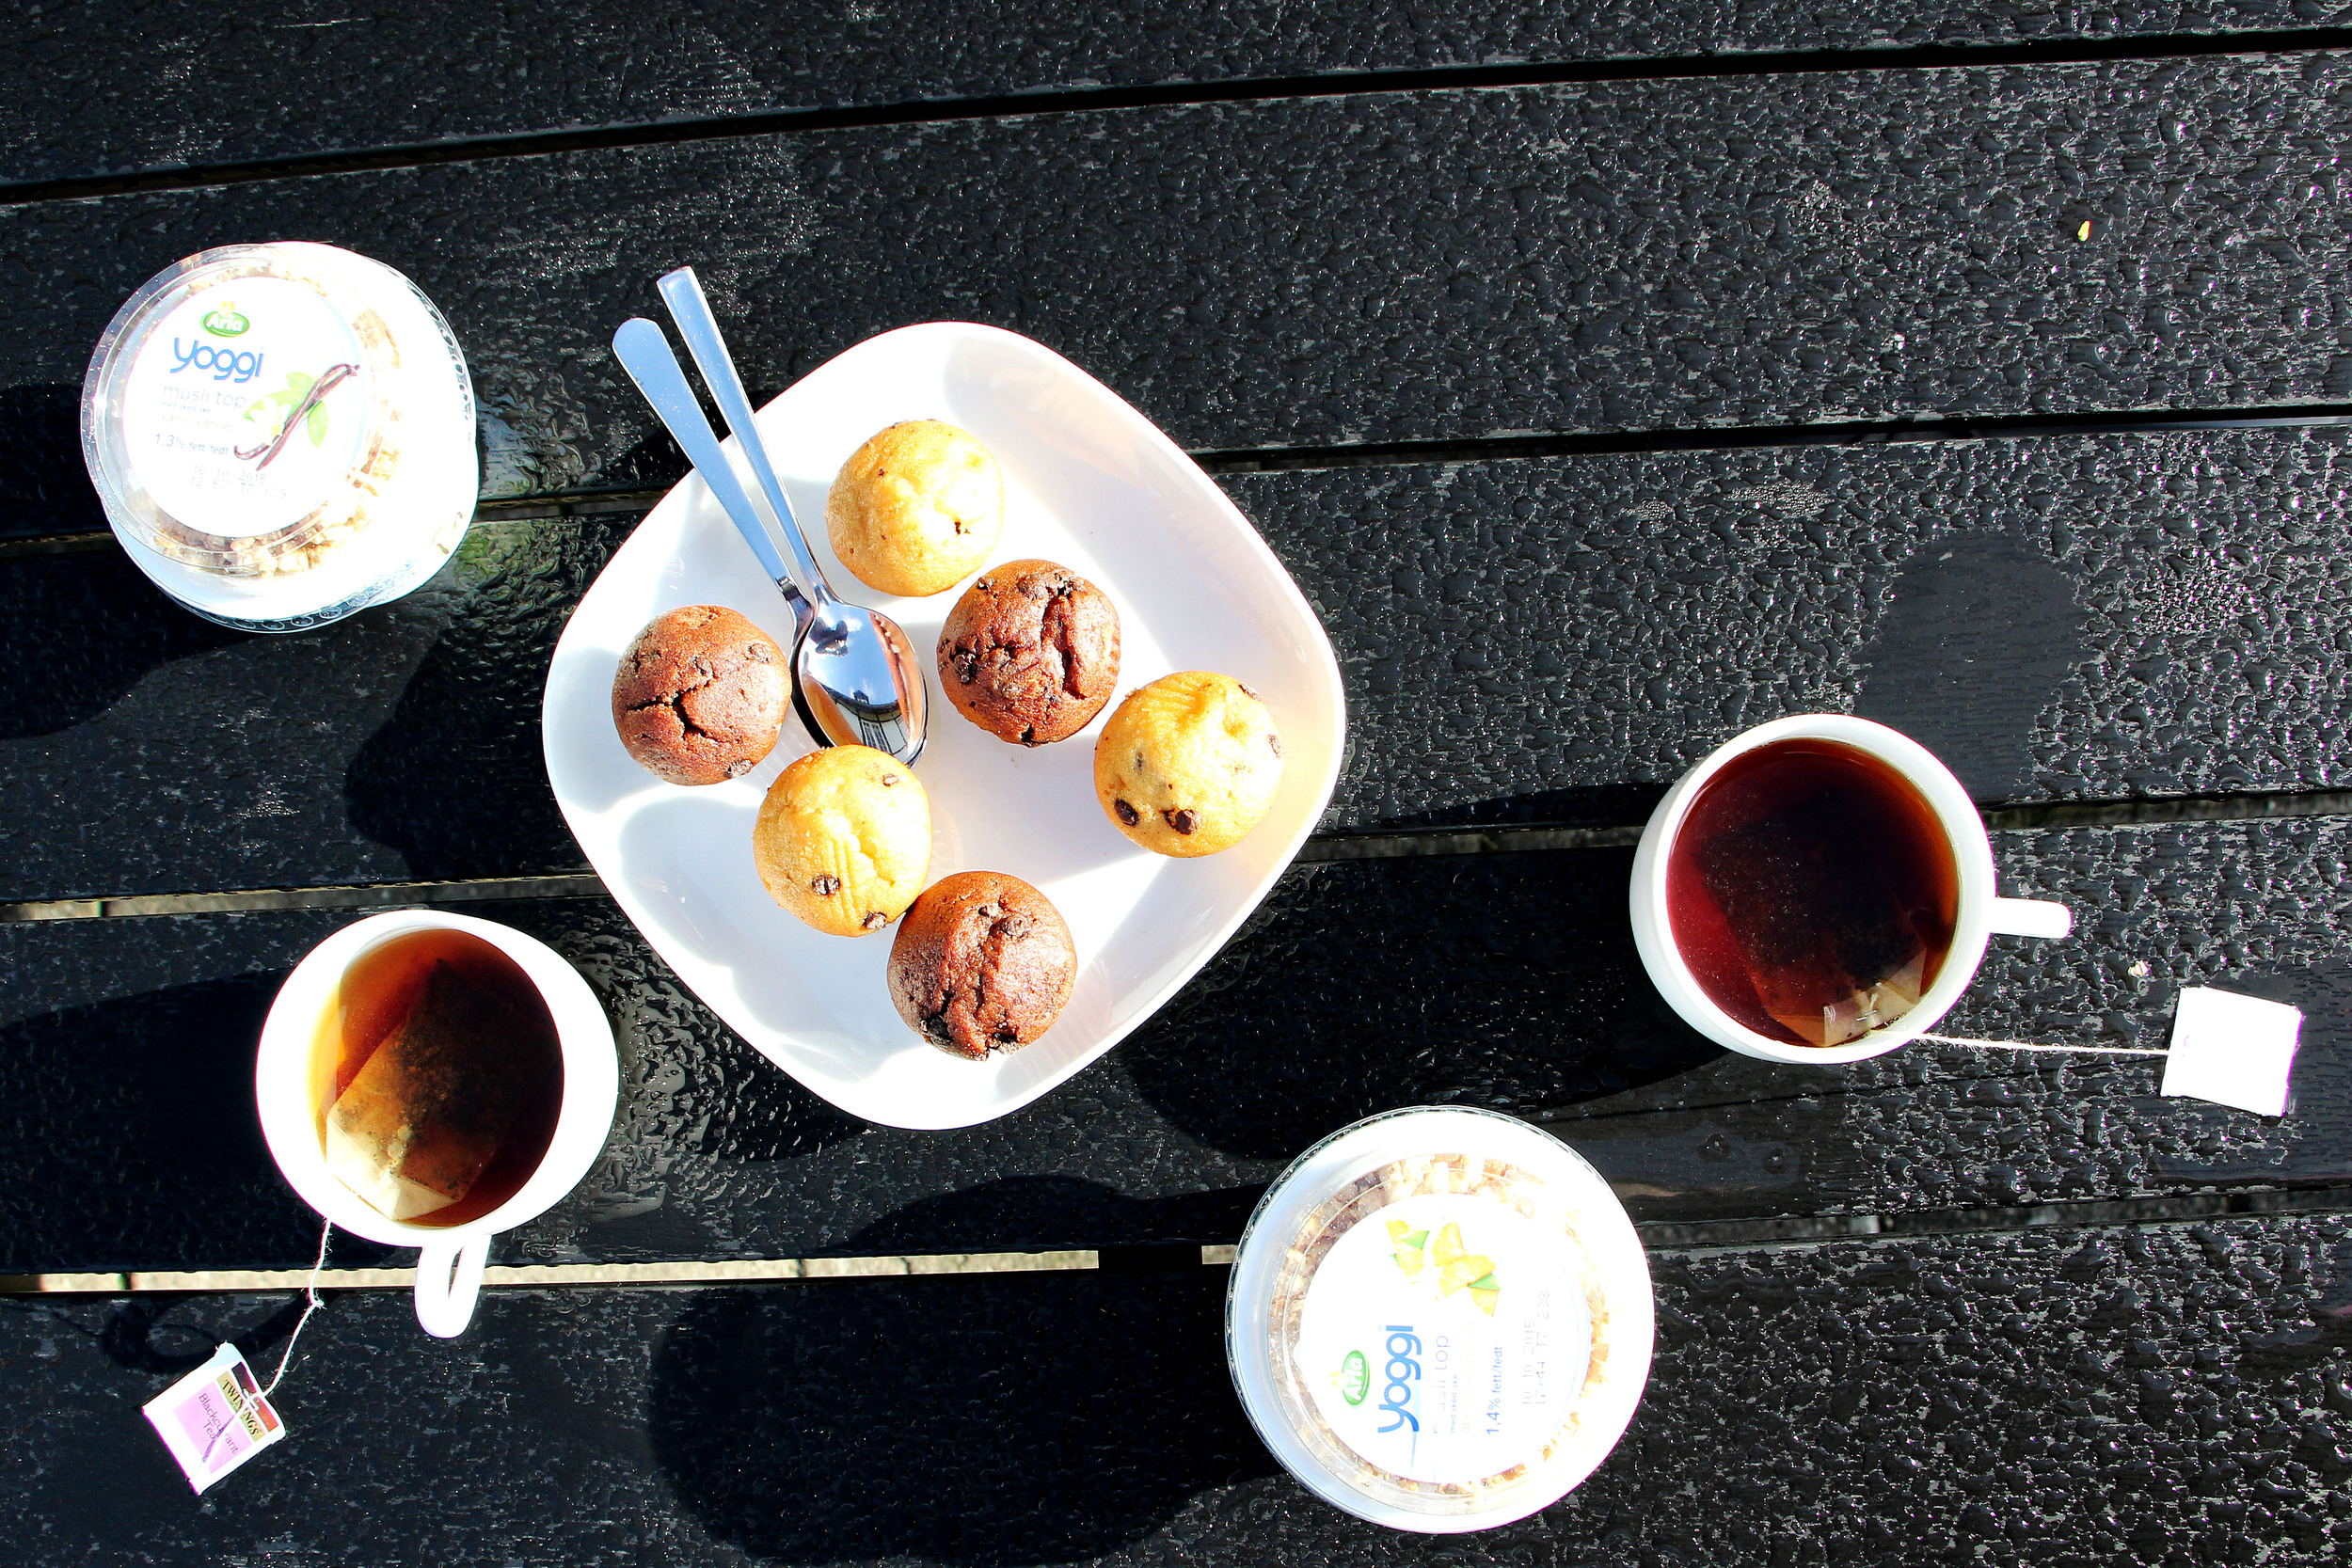 Our little breakfast in the morning– which was eaten out in the garden.